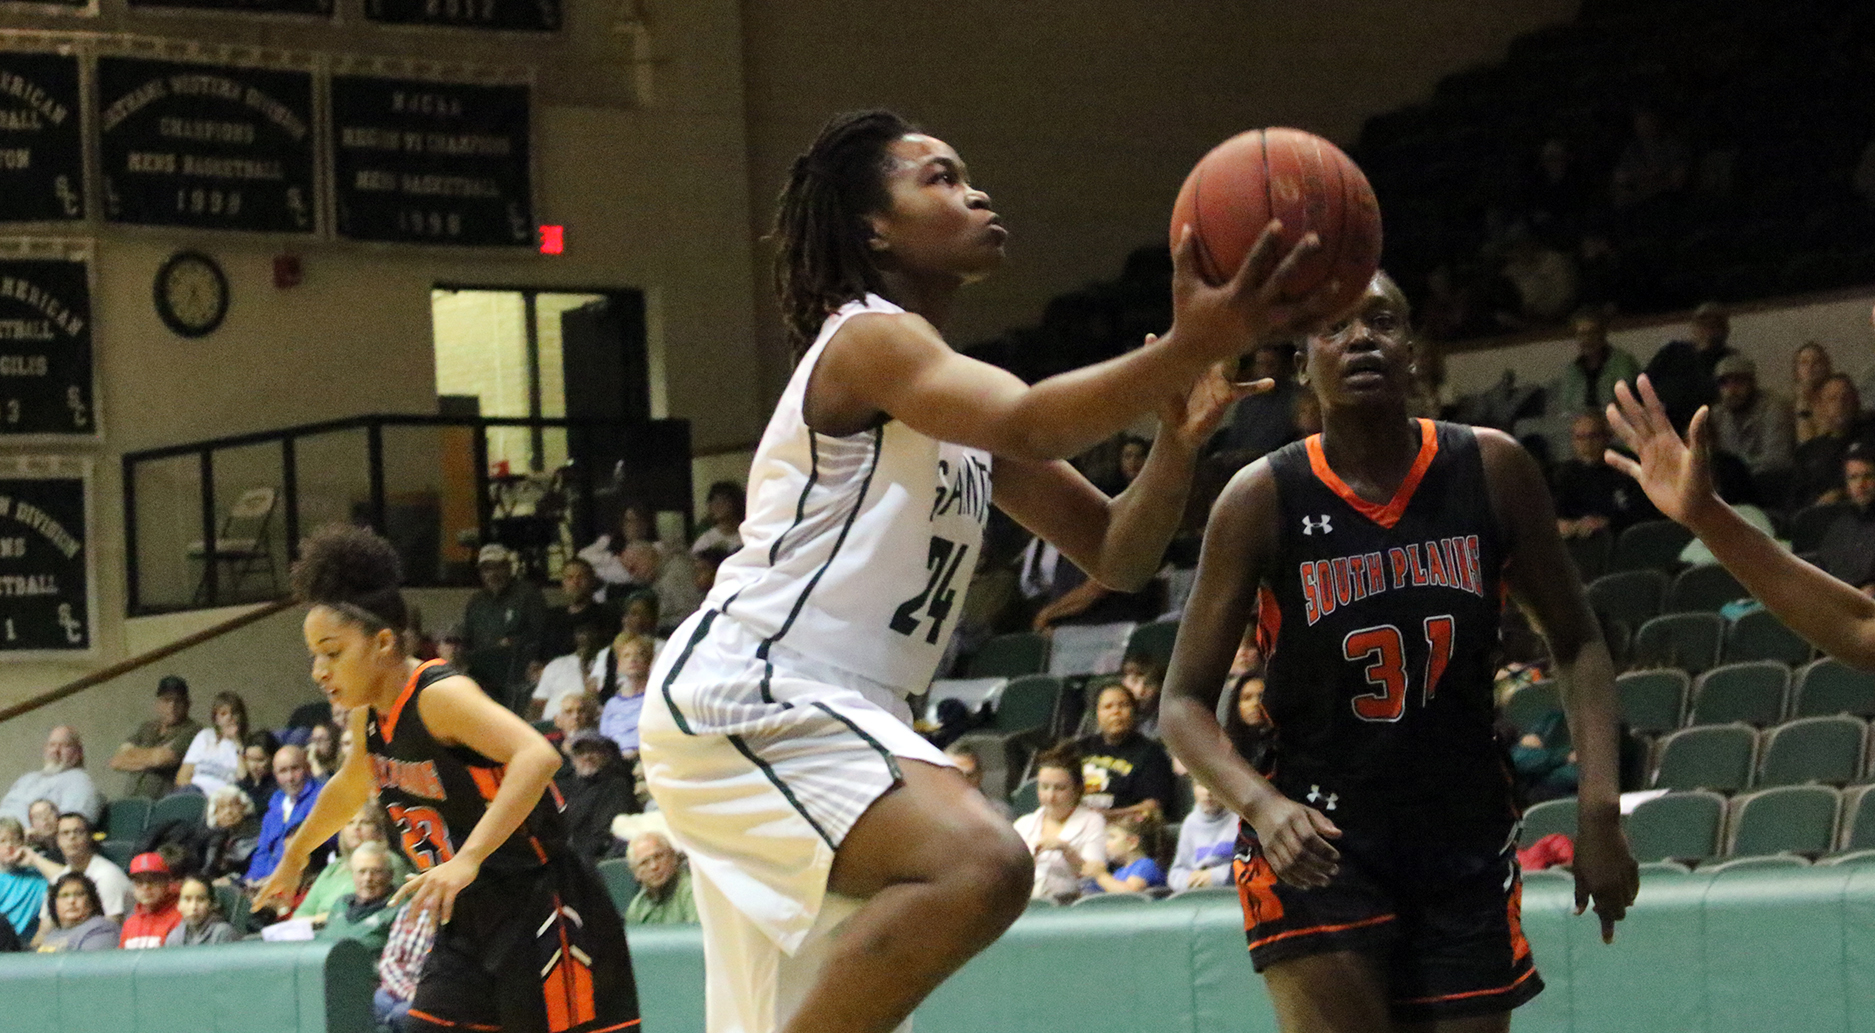 Lady Saints Overcome 11-Point Deficit to Defeat No. 15 South Plains